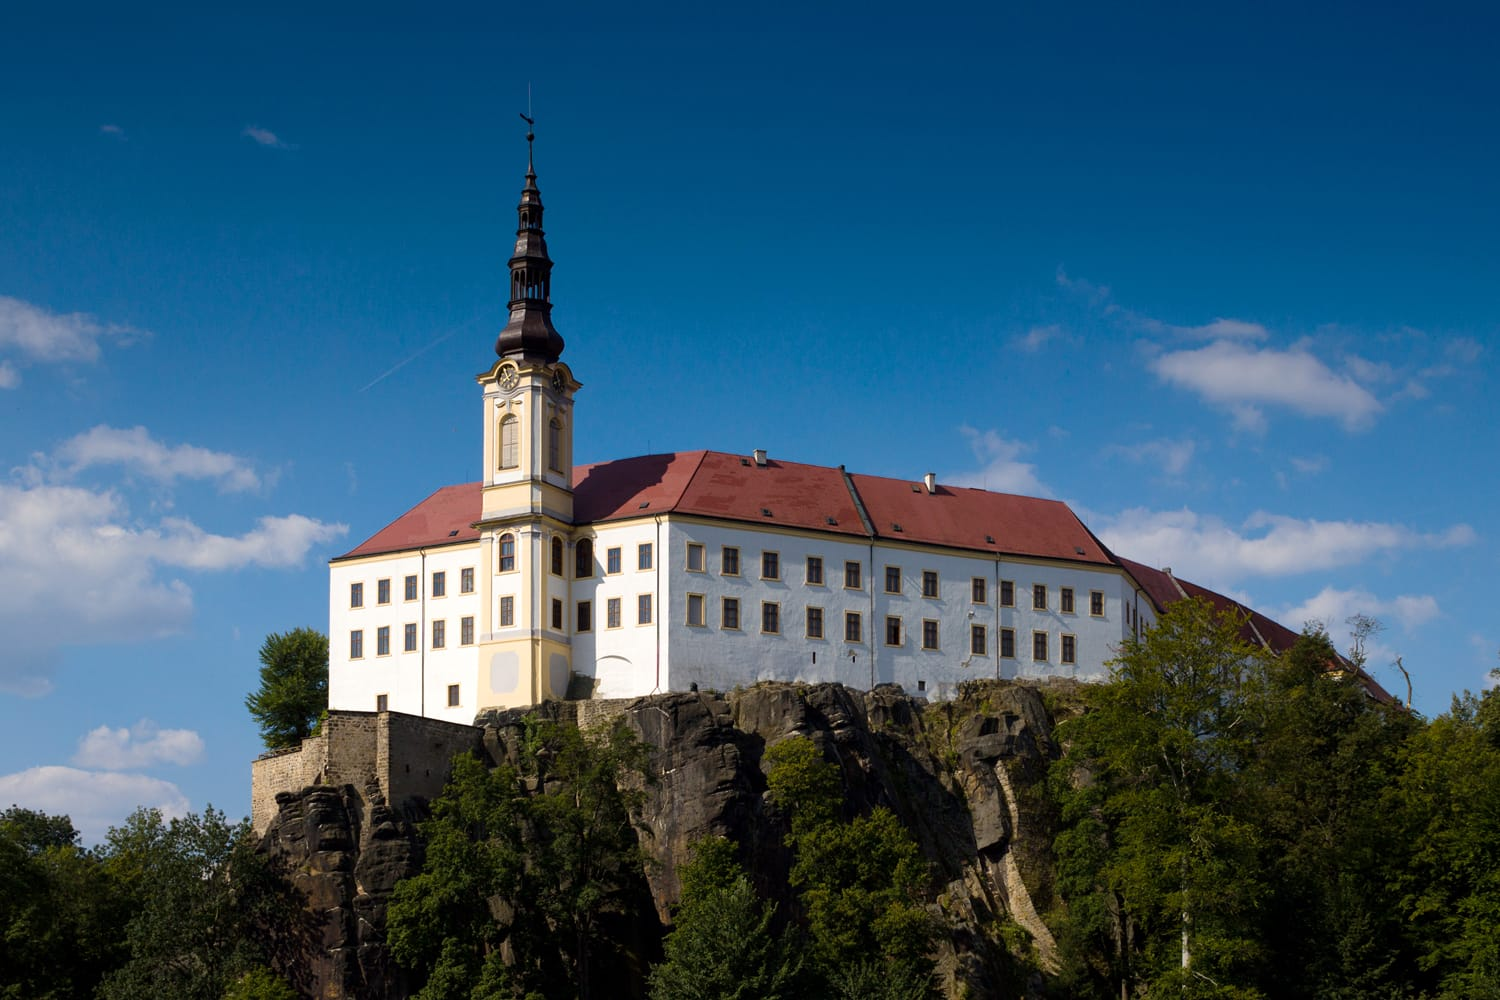 White chateau (castle) on the rock - Decin, Bohemia, Czech Republic.